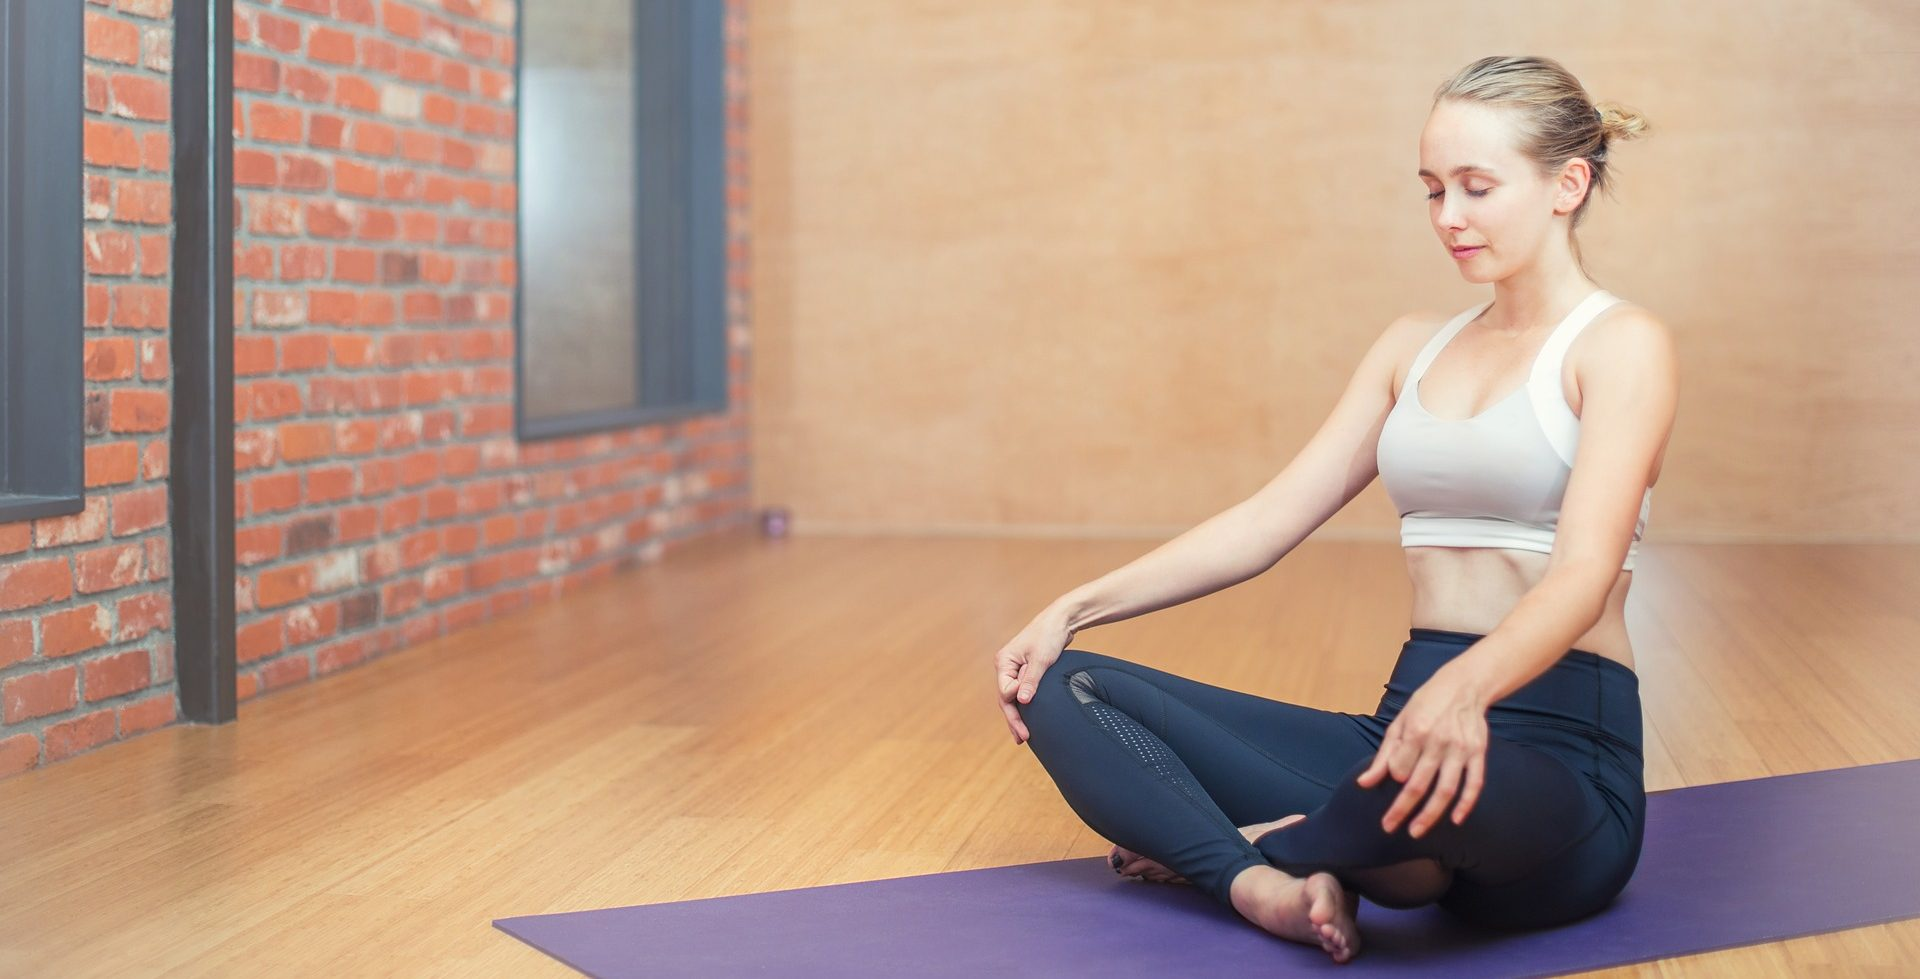 Woman at yoga studio sitting on her mat - Conscious Life Space